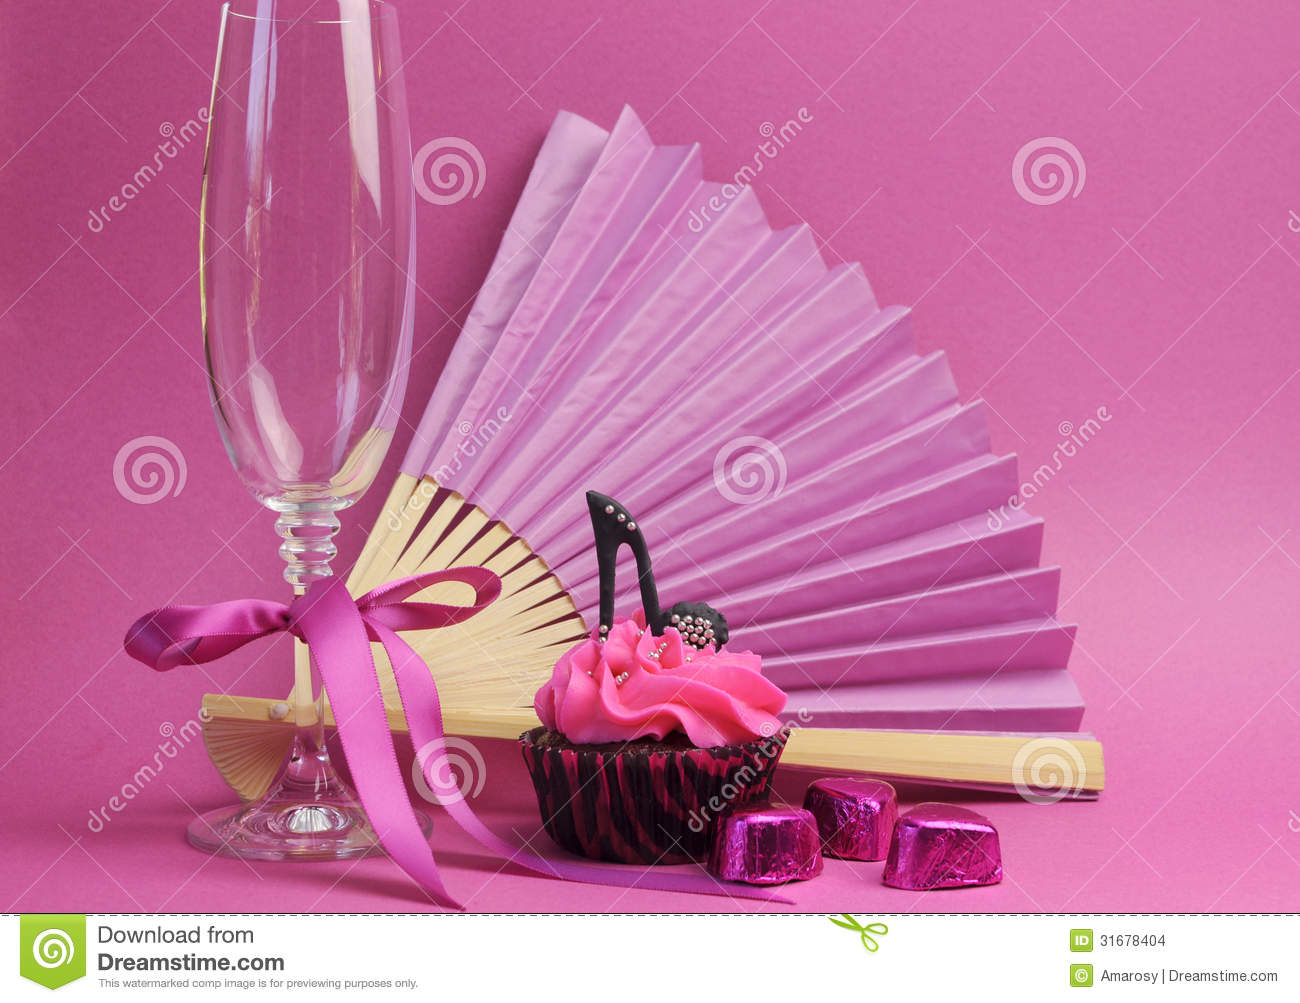 Cupcake Decorating Ideas Pink And Black : Pink Party Decorations With Fan, Champagne Glass And High ...